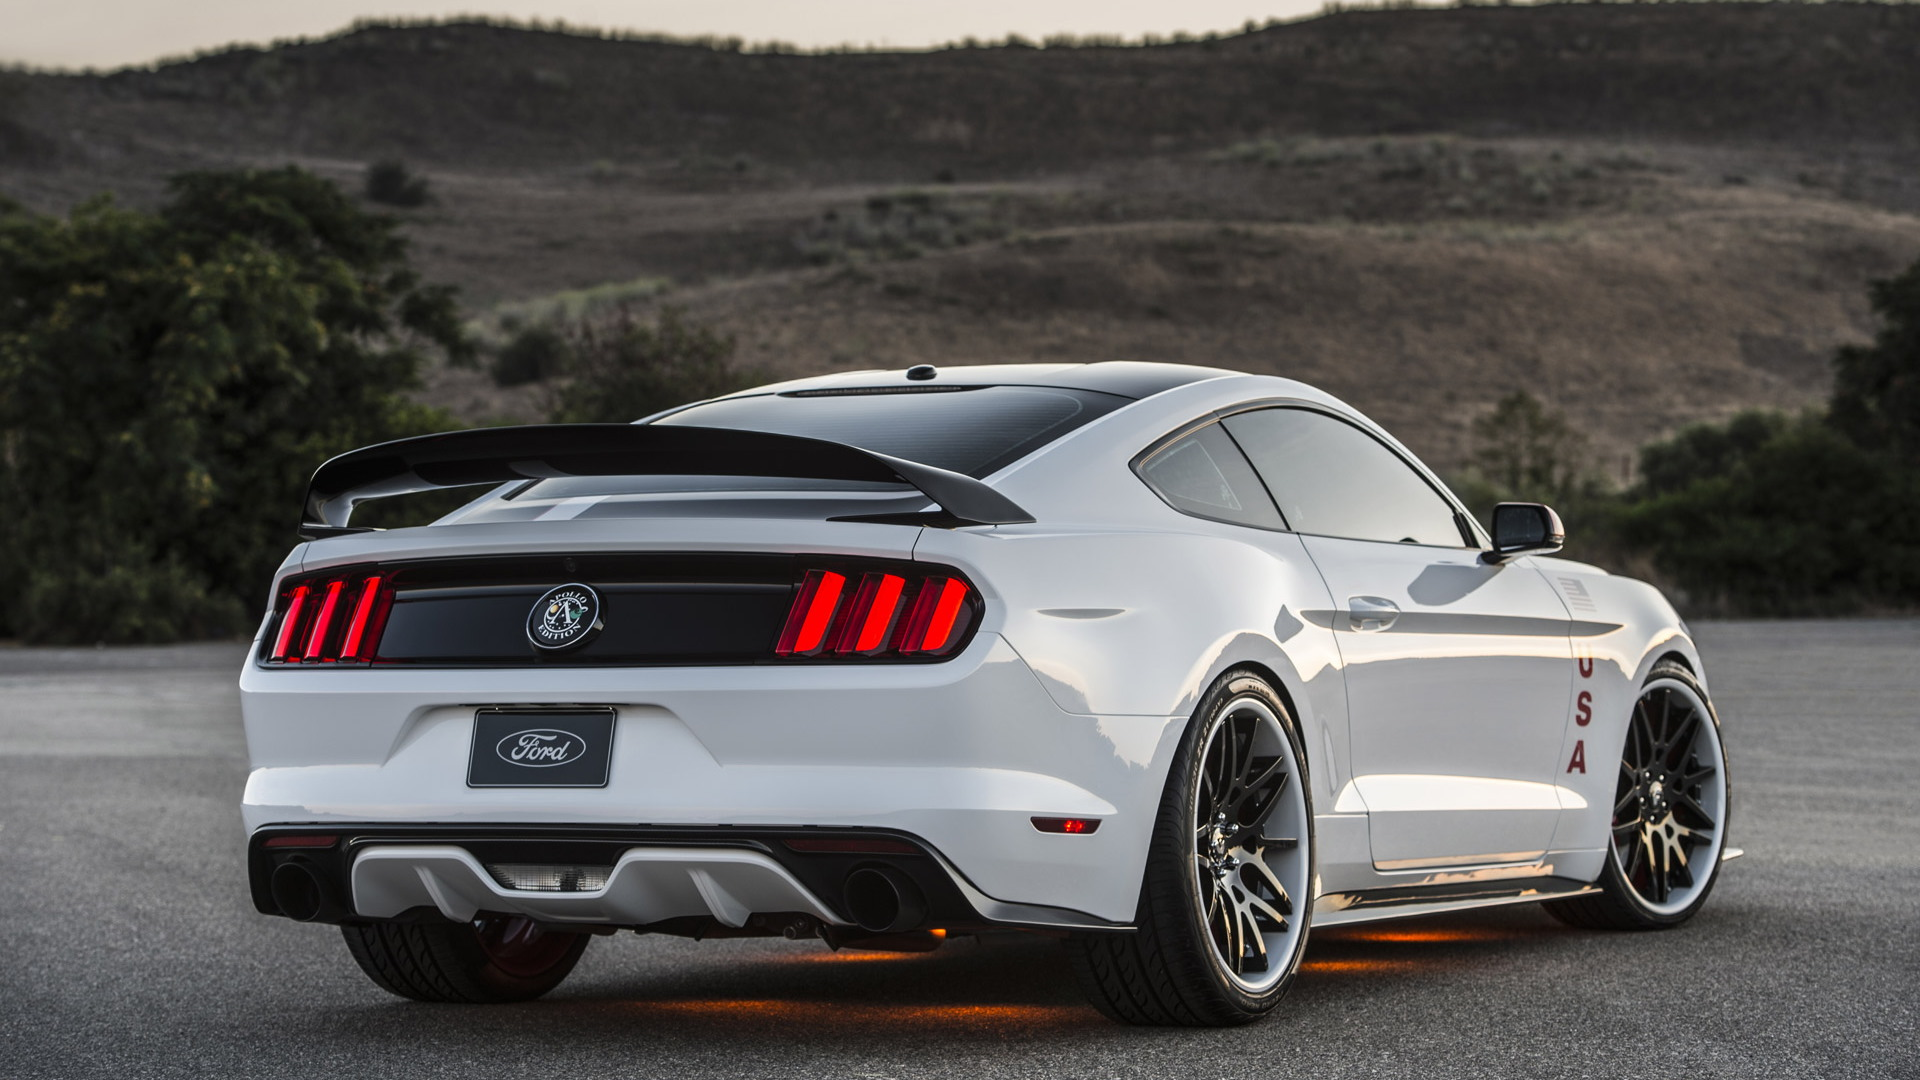 2015 Ford Mustang Apollo Edition